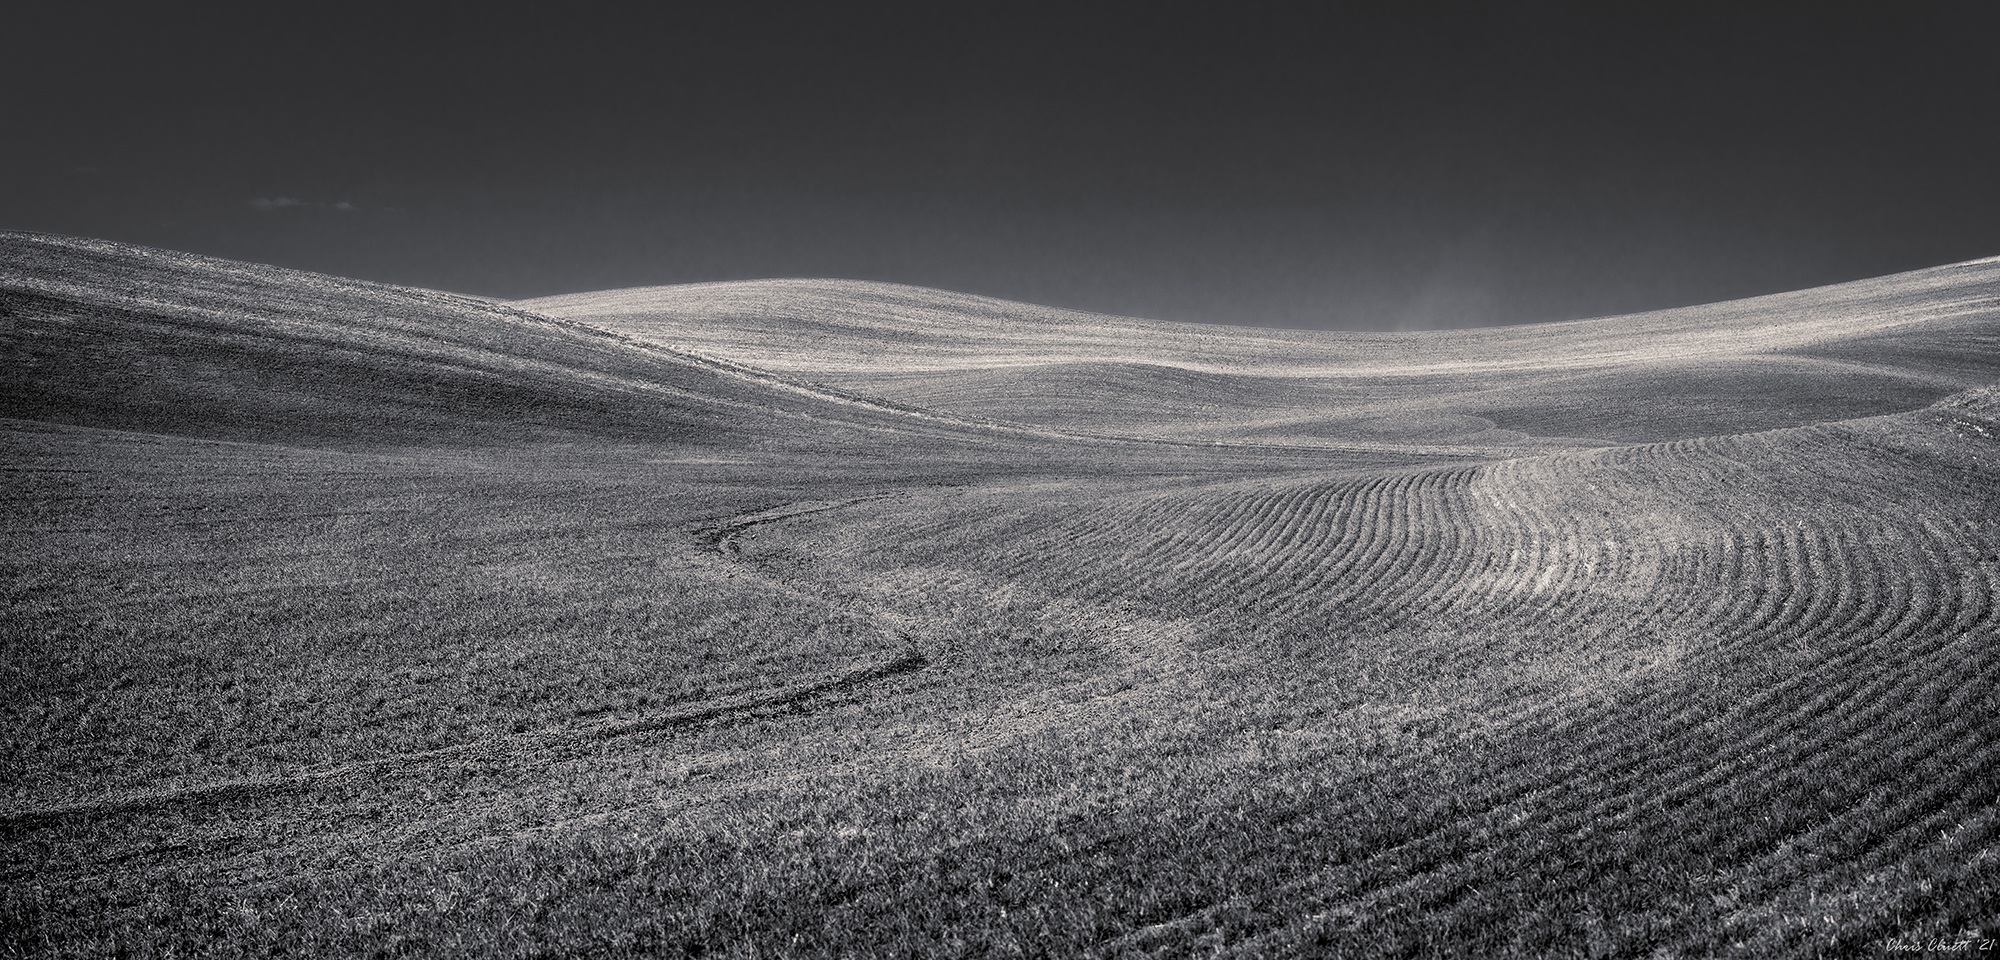 Precise and artful plowing patterns are drawn in the soil.